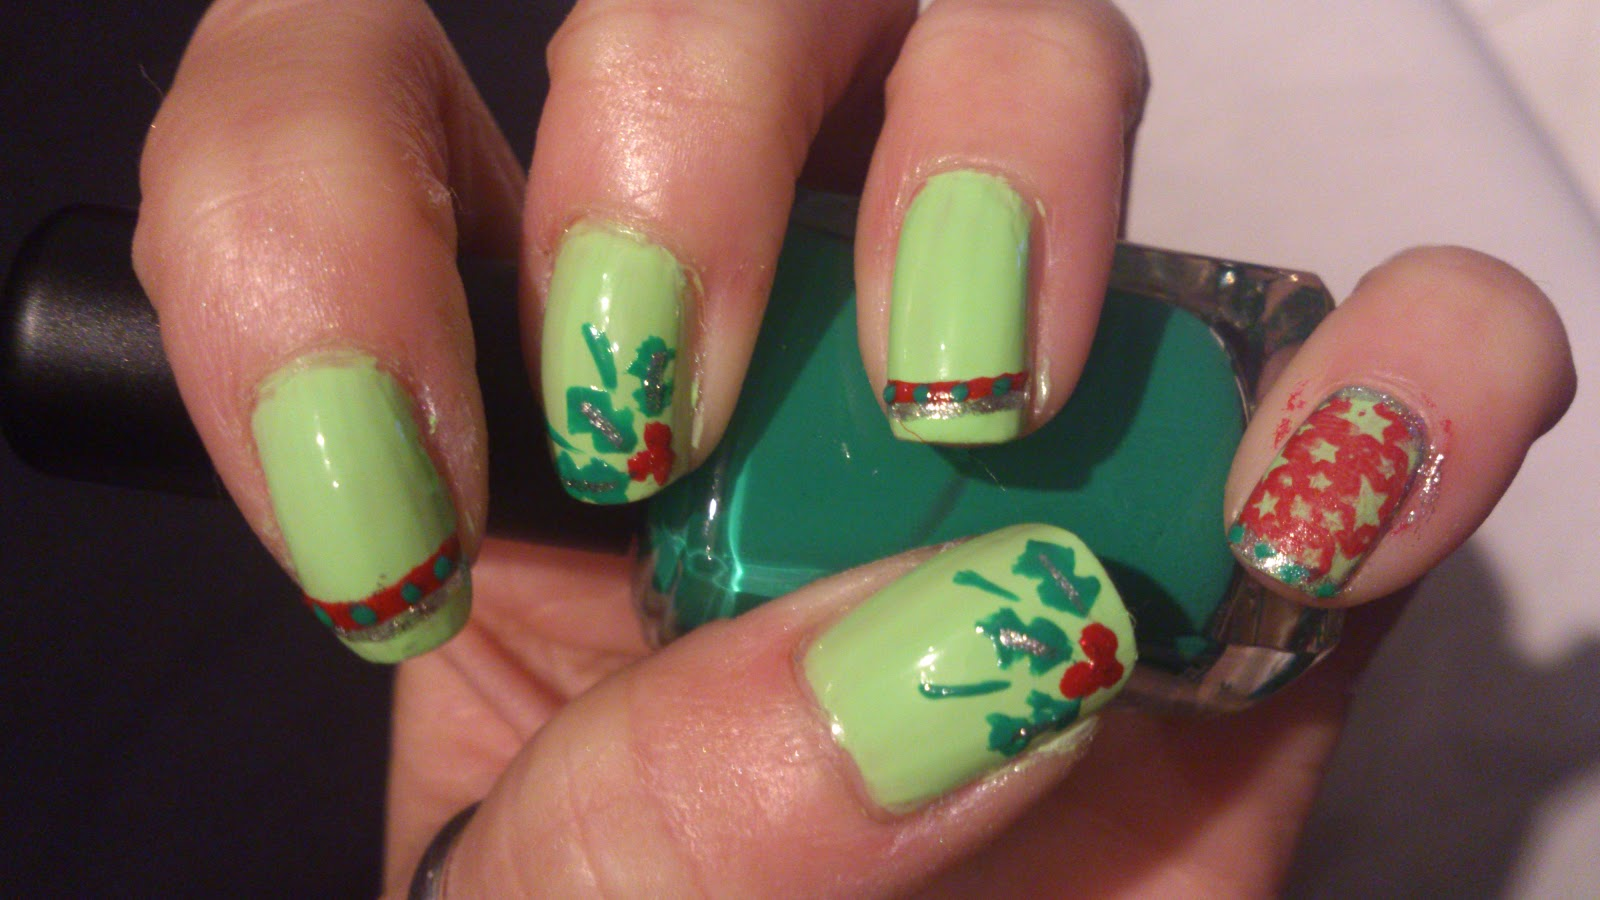 Manicura de Fantasia: A Holly Jolly Christmas Challenge: Deck the Halls!